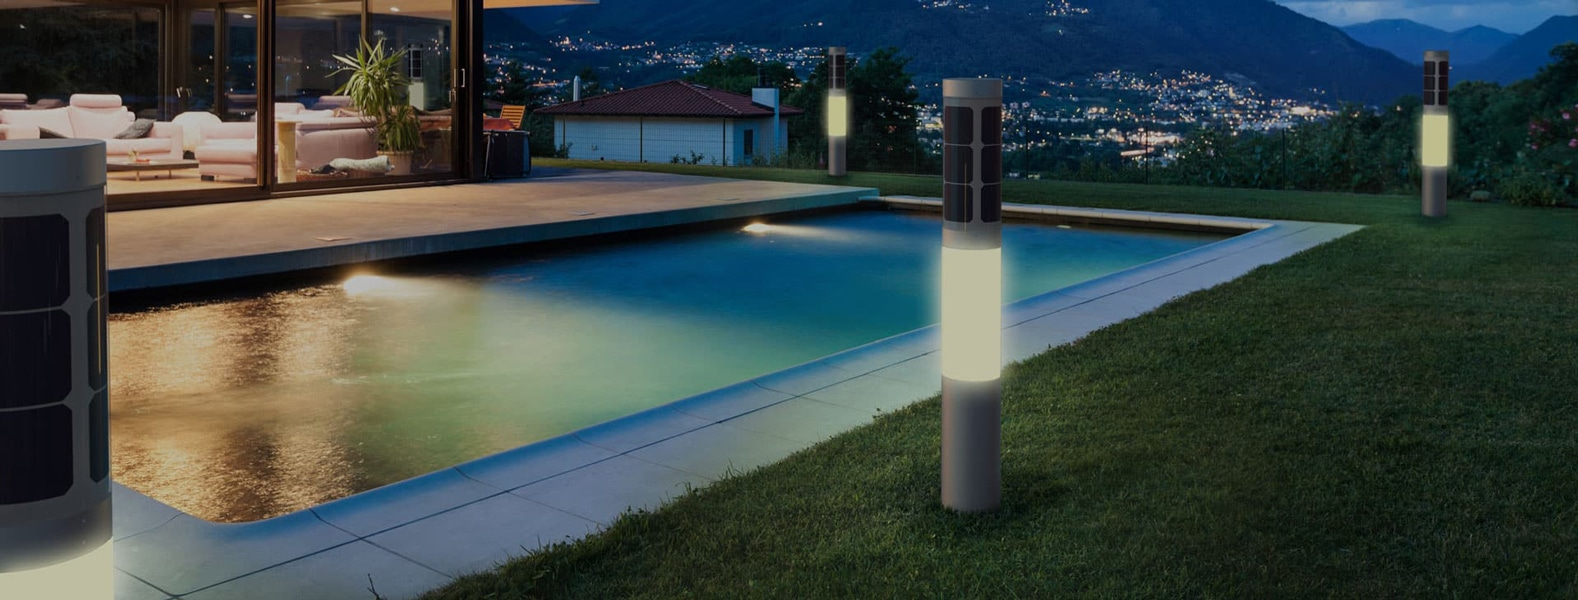 View Larger Image Nxt Smart Solar Lamp Home Automation Z Wave Outdoor Pool Lighting